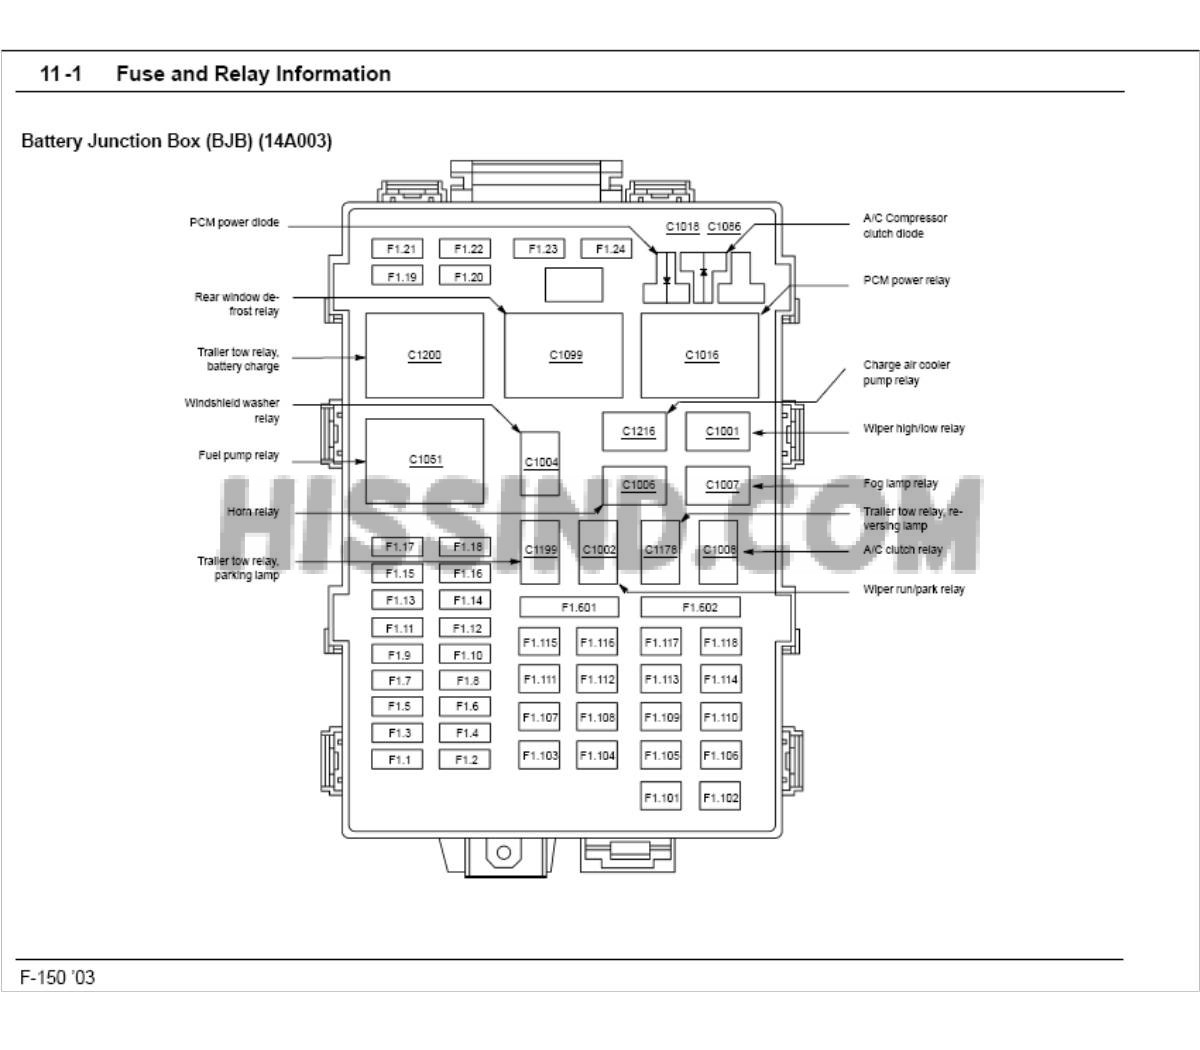 2004 F150 5 4 Engine Fuse Box Diagram 37 Wiring Images 2006 F 150 2000 Ford Bay 2003 54